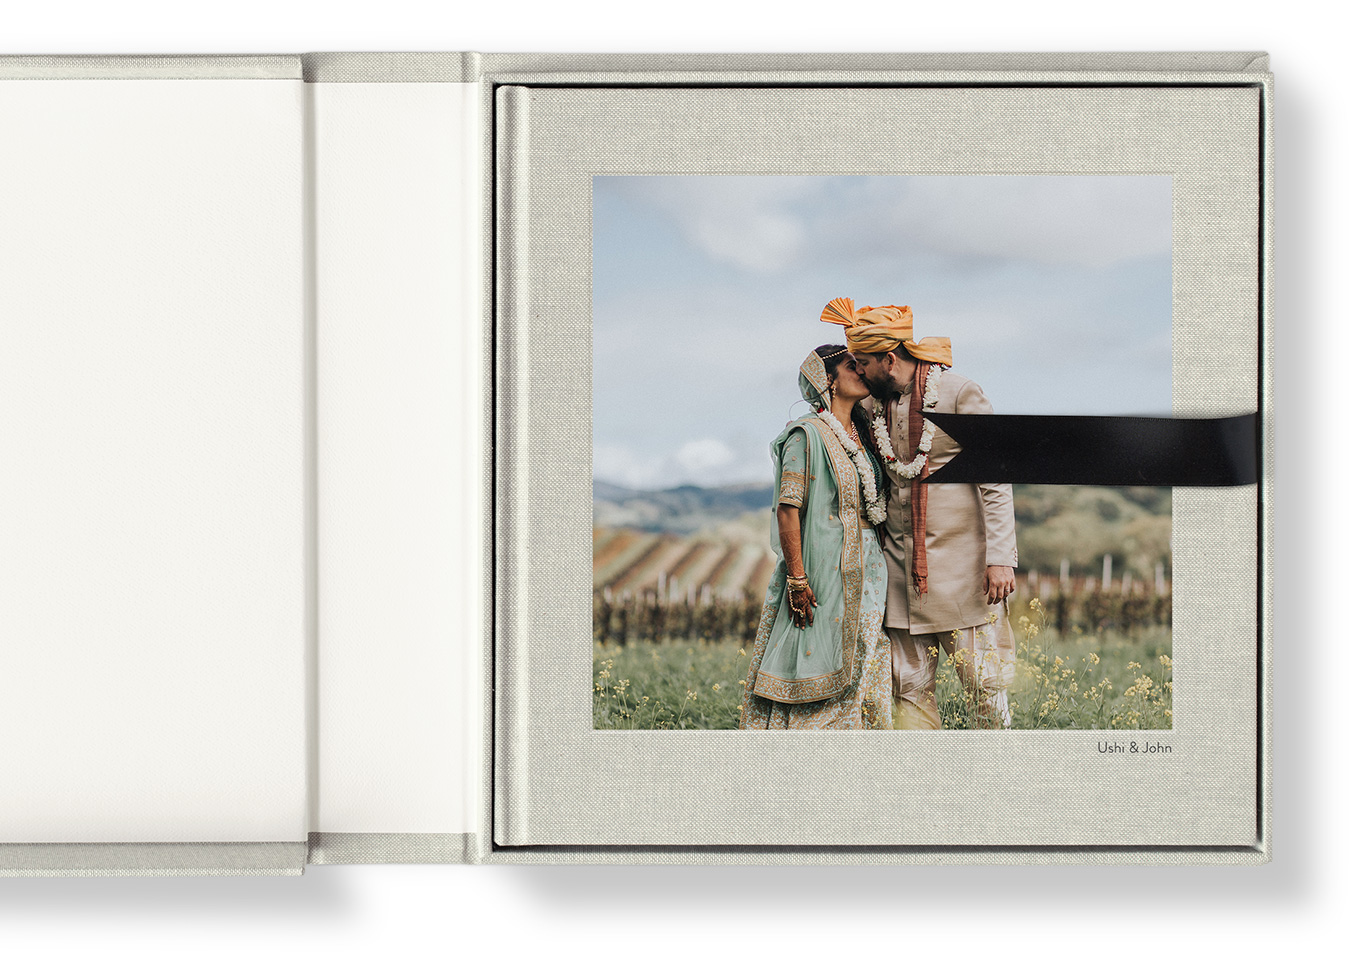 Premium square photo album and matching presentation box with a fine silk lift-out ribbon.